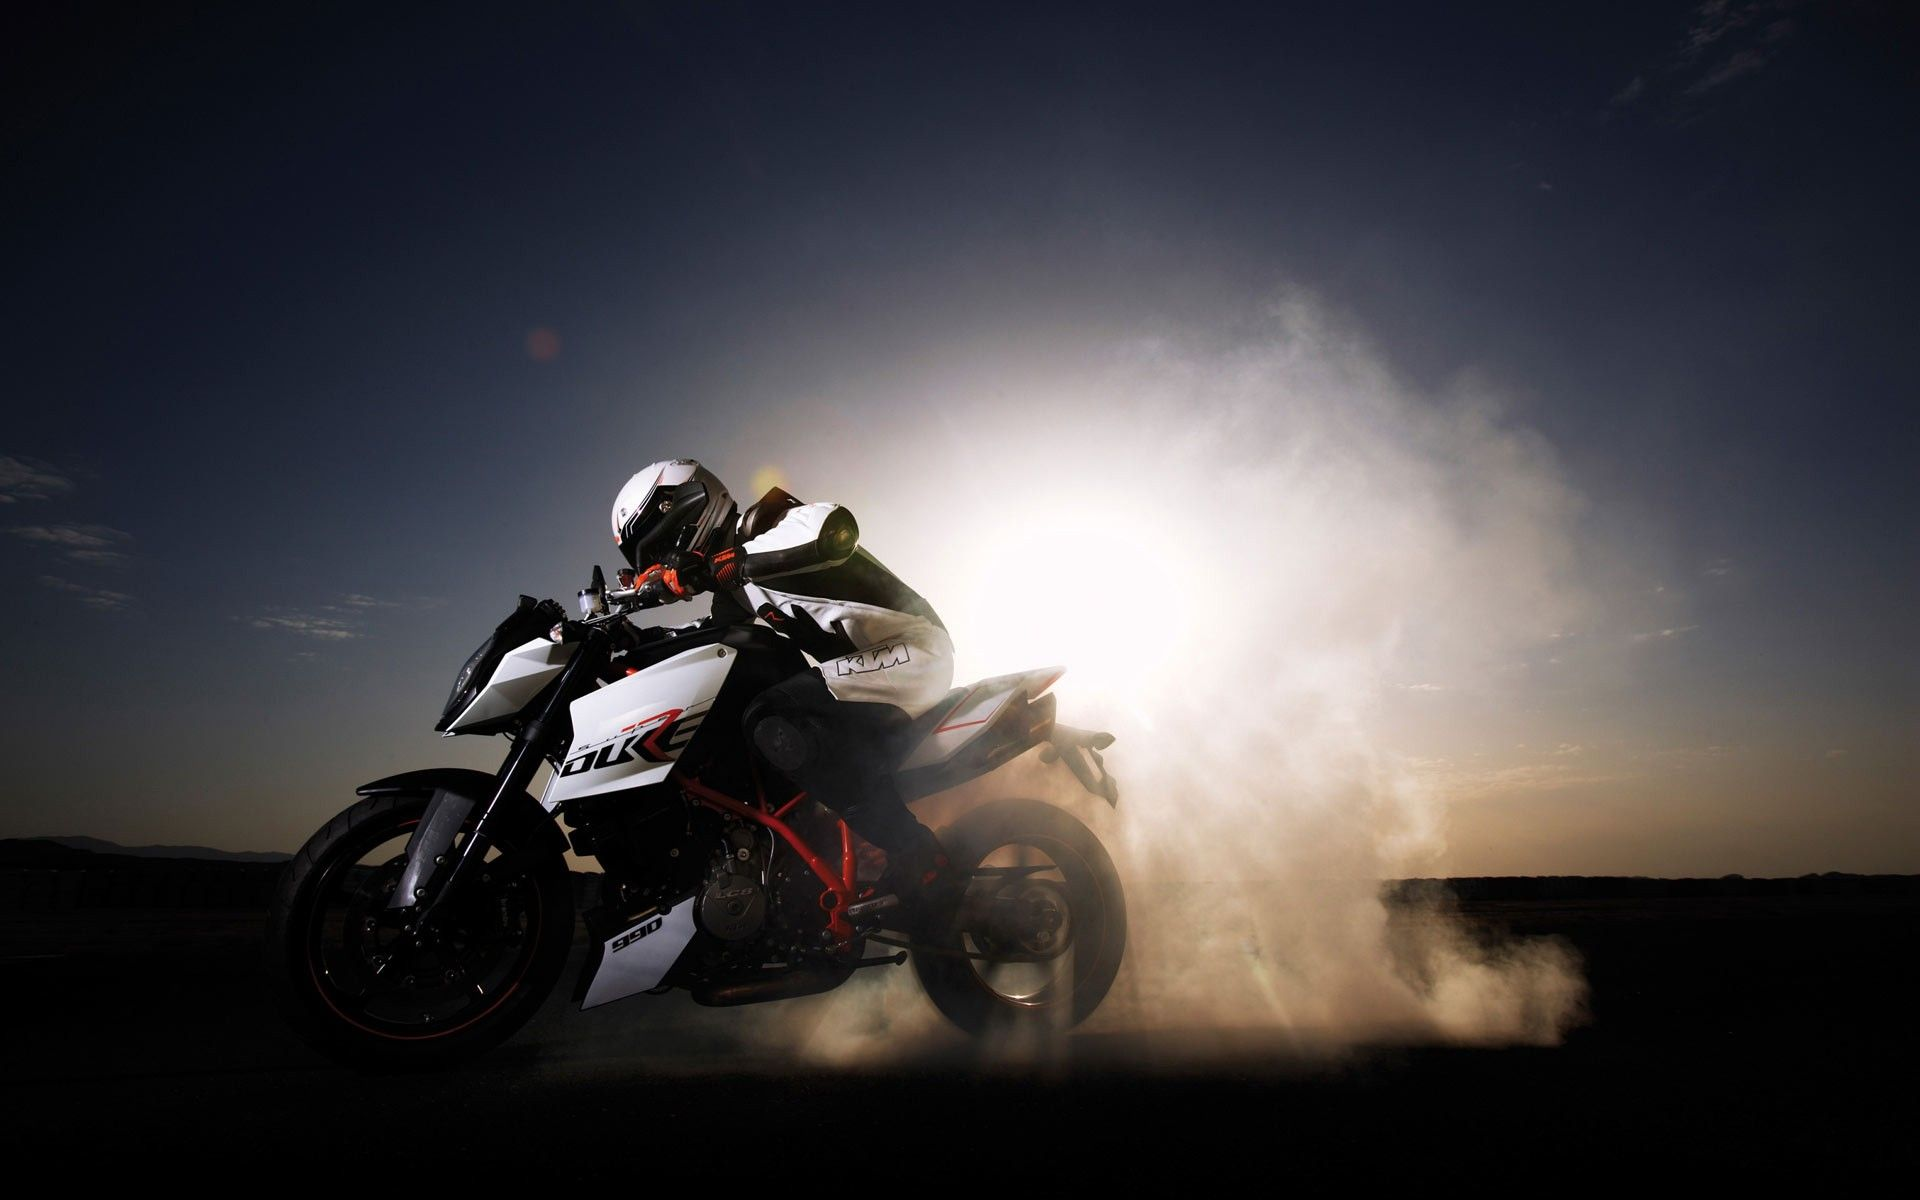 Ktm Duke 990 Burnout Wallpaper Hdwallpaperfx Pinterest